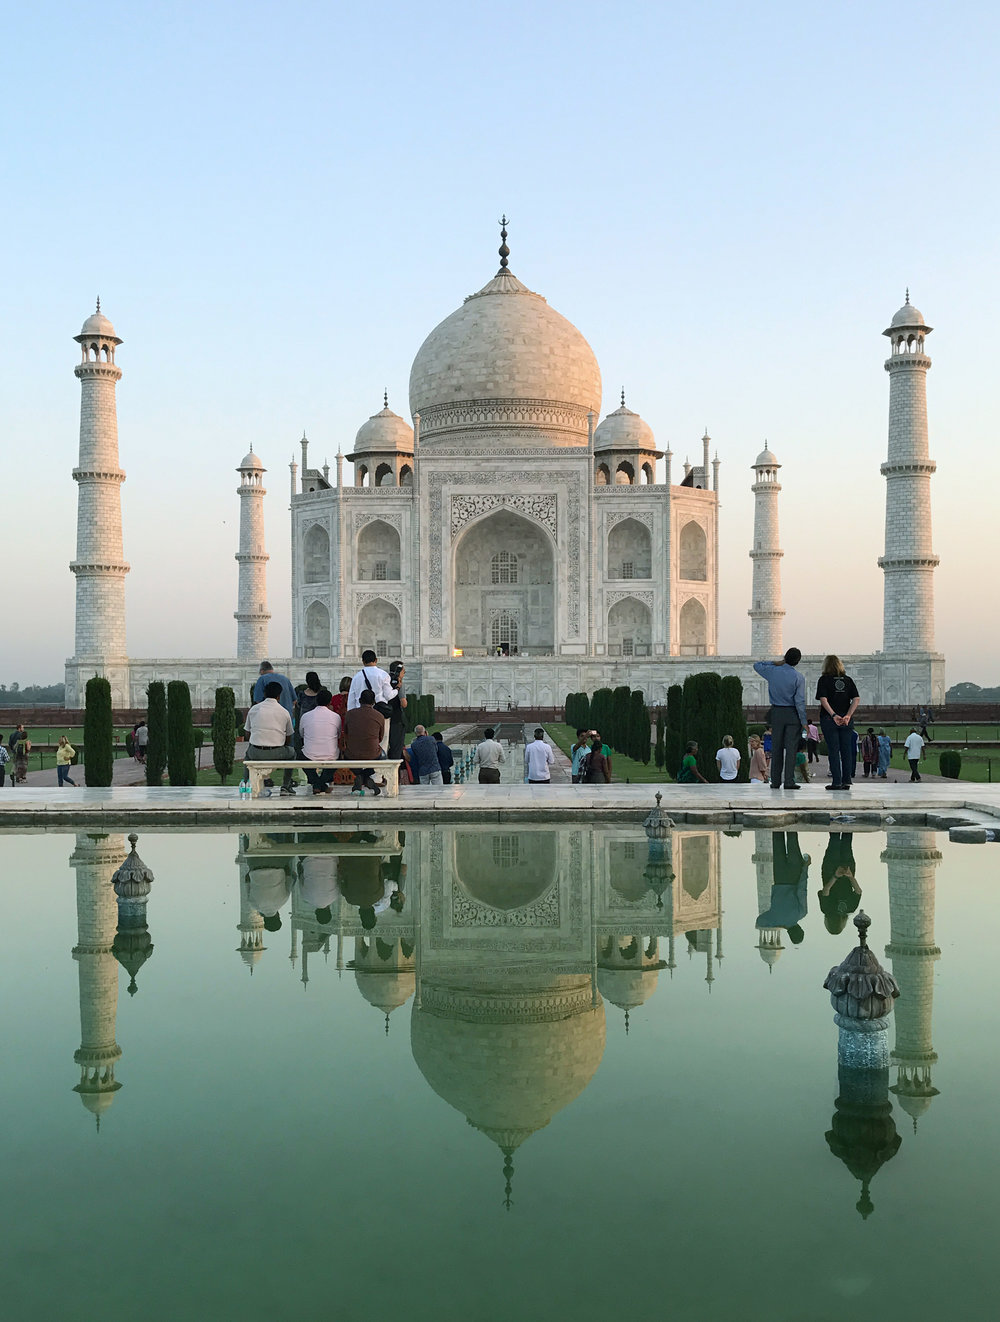 Here it is, the breathtaking Taj Mahal!